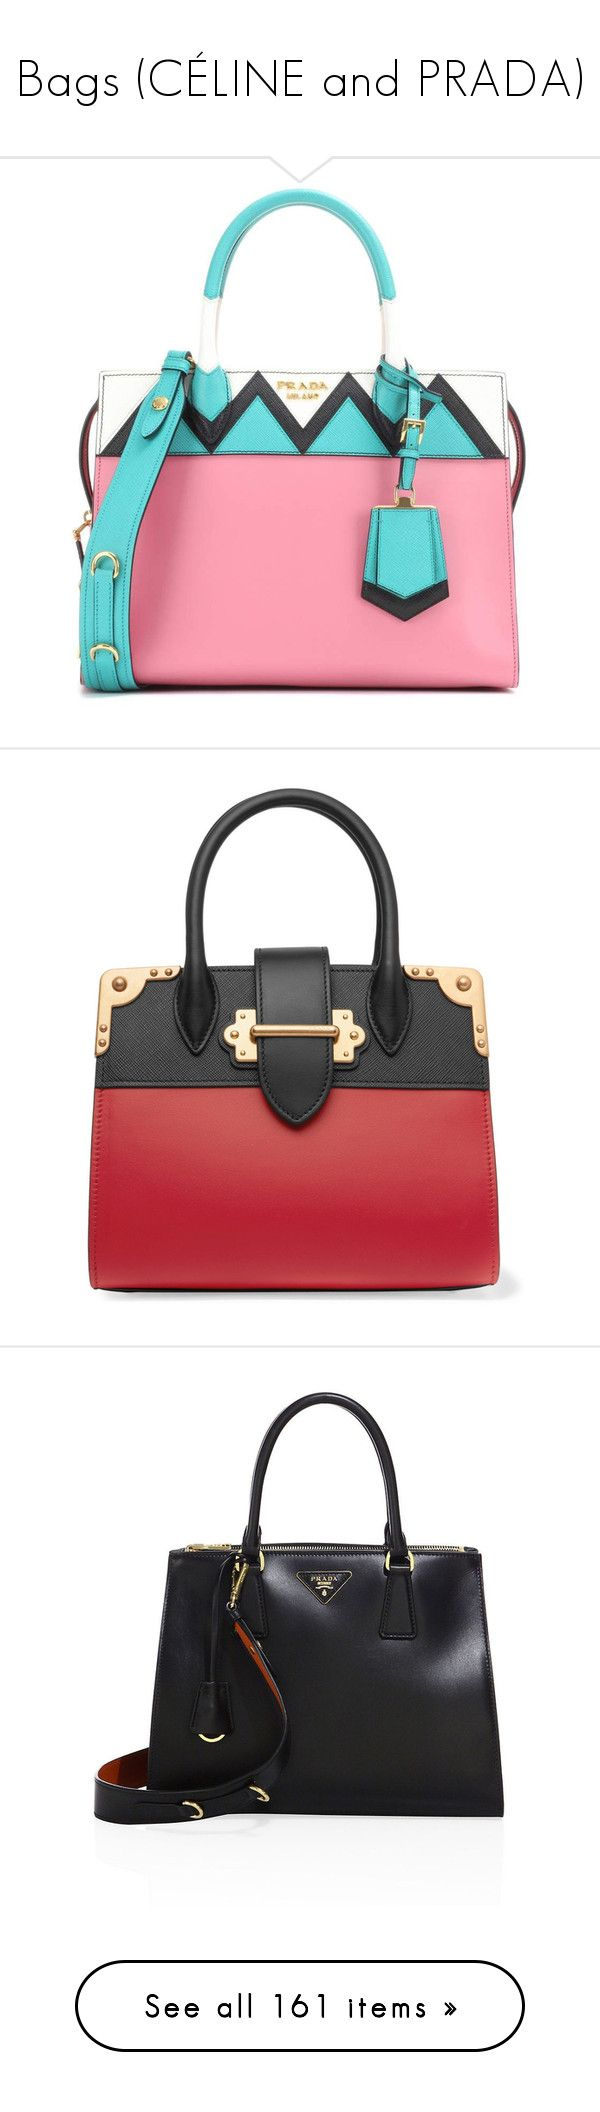 """""""Bags (CÉLINE and PRADA)"""" by medicicavendish ❤ liked on Polyvore featuring bags, handbags, tote bags, sac, wine, zippered tote bag, prada tote, prada handbags, prada tote bag and zip top tote"""